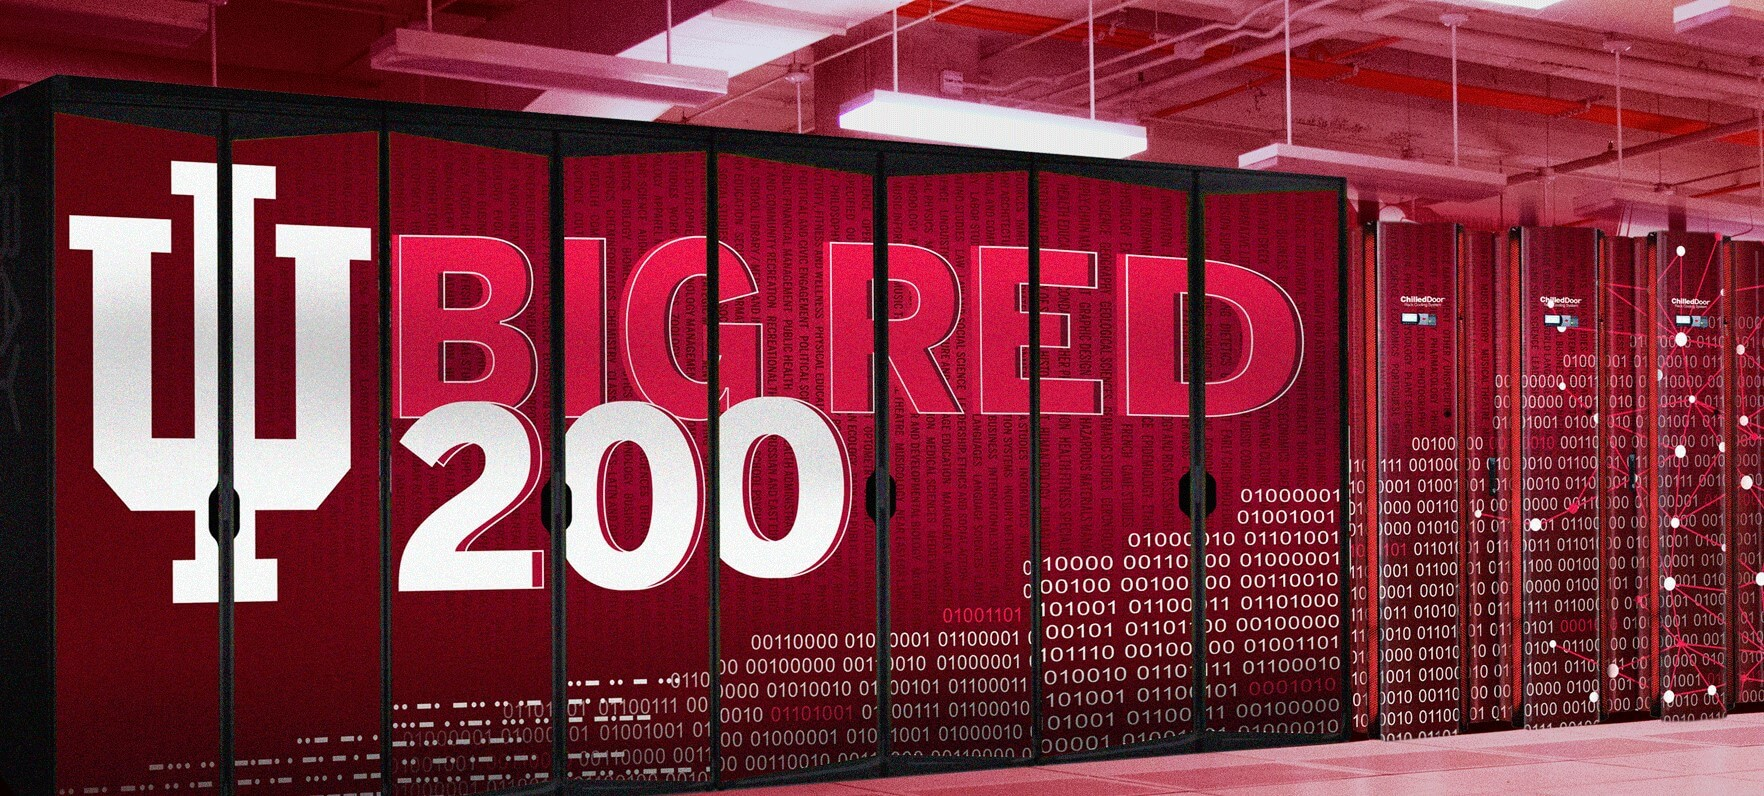 Next-gen Nvidia GPUs will power the Big Red 200 supercomputer by fall